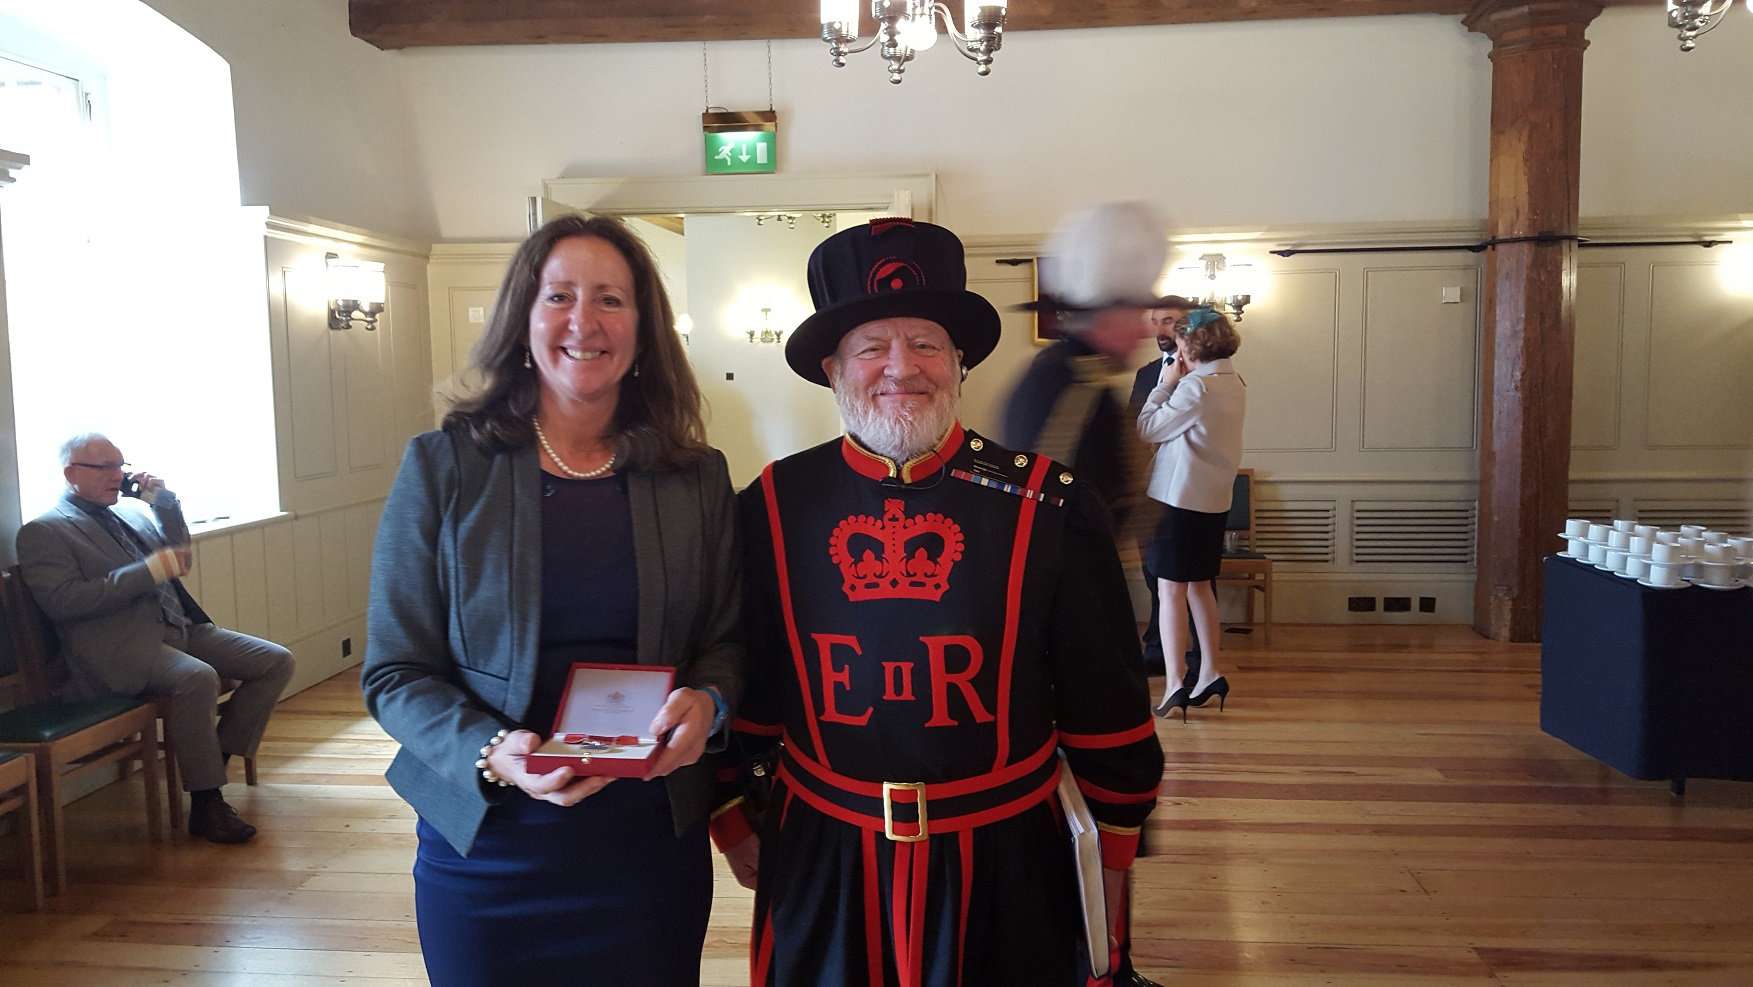 Linda with medal and Beefeater